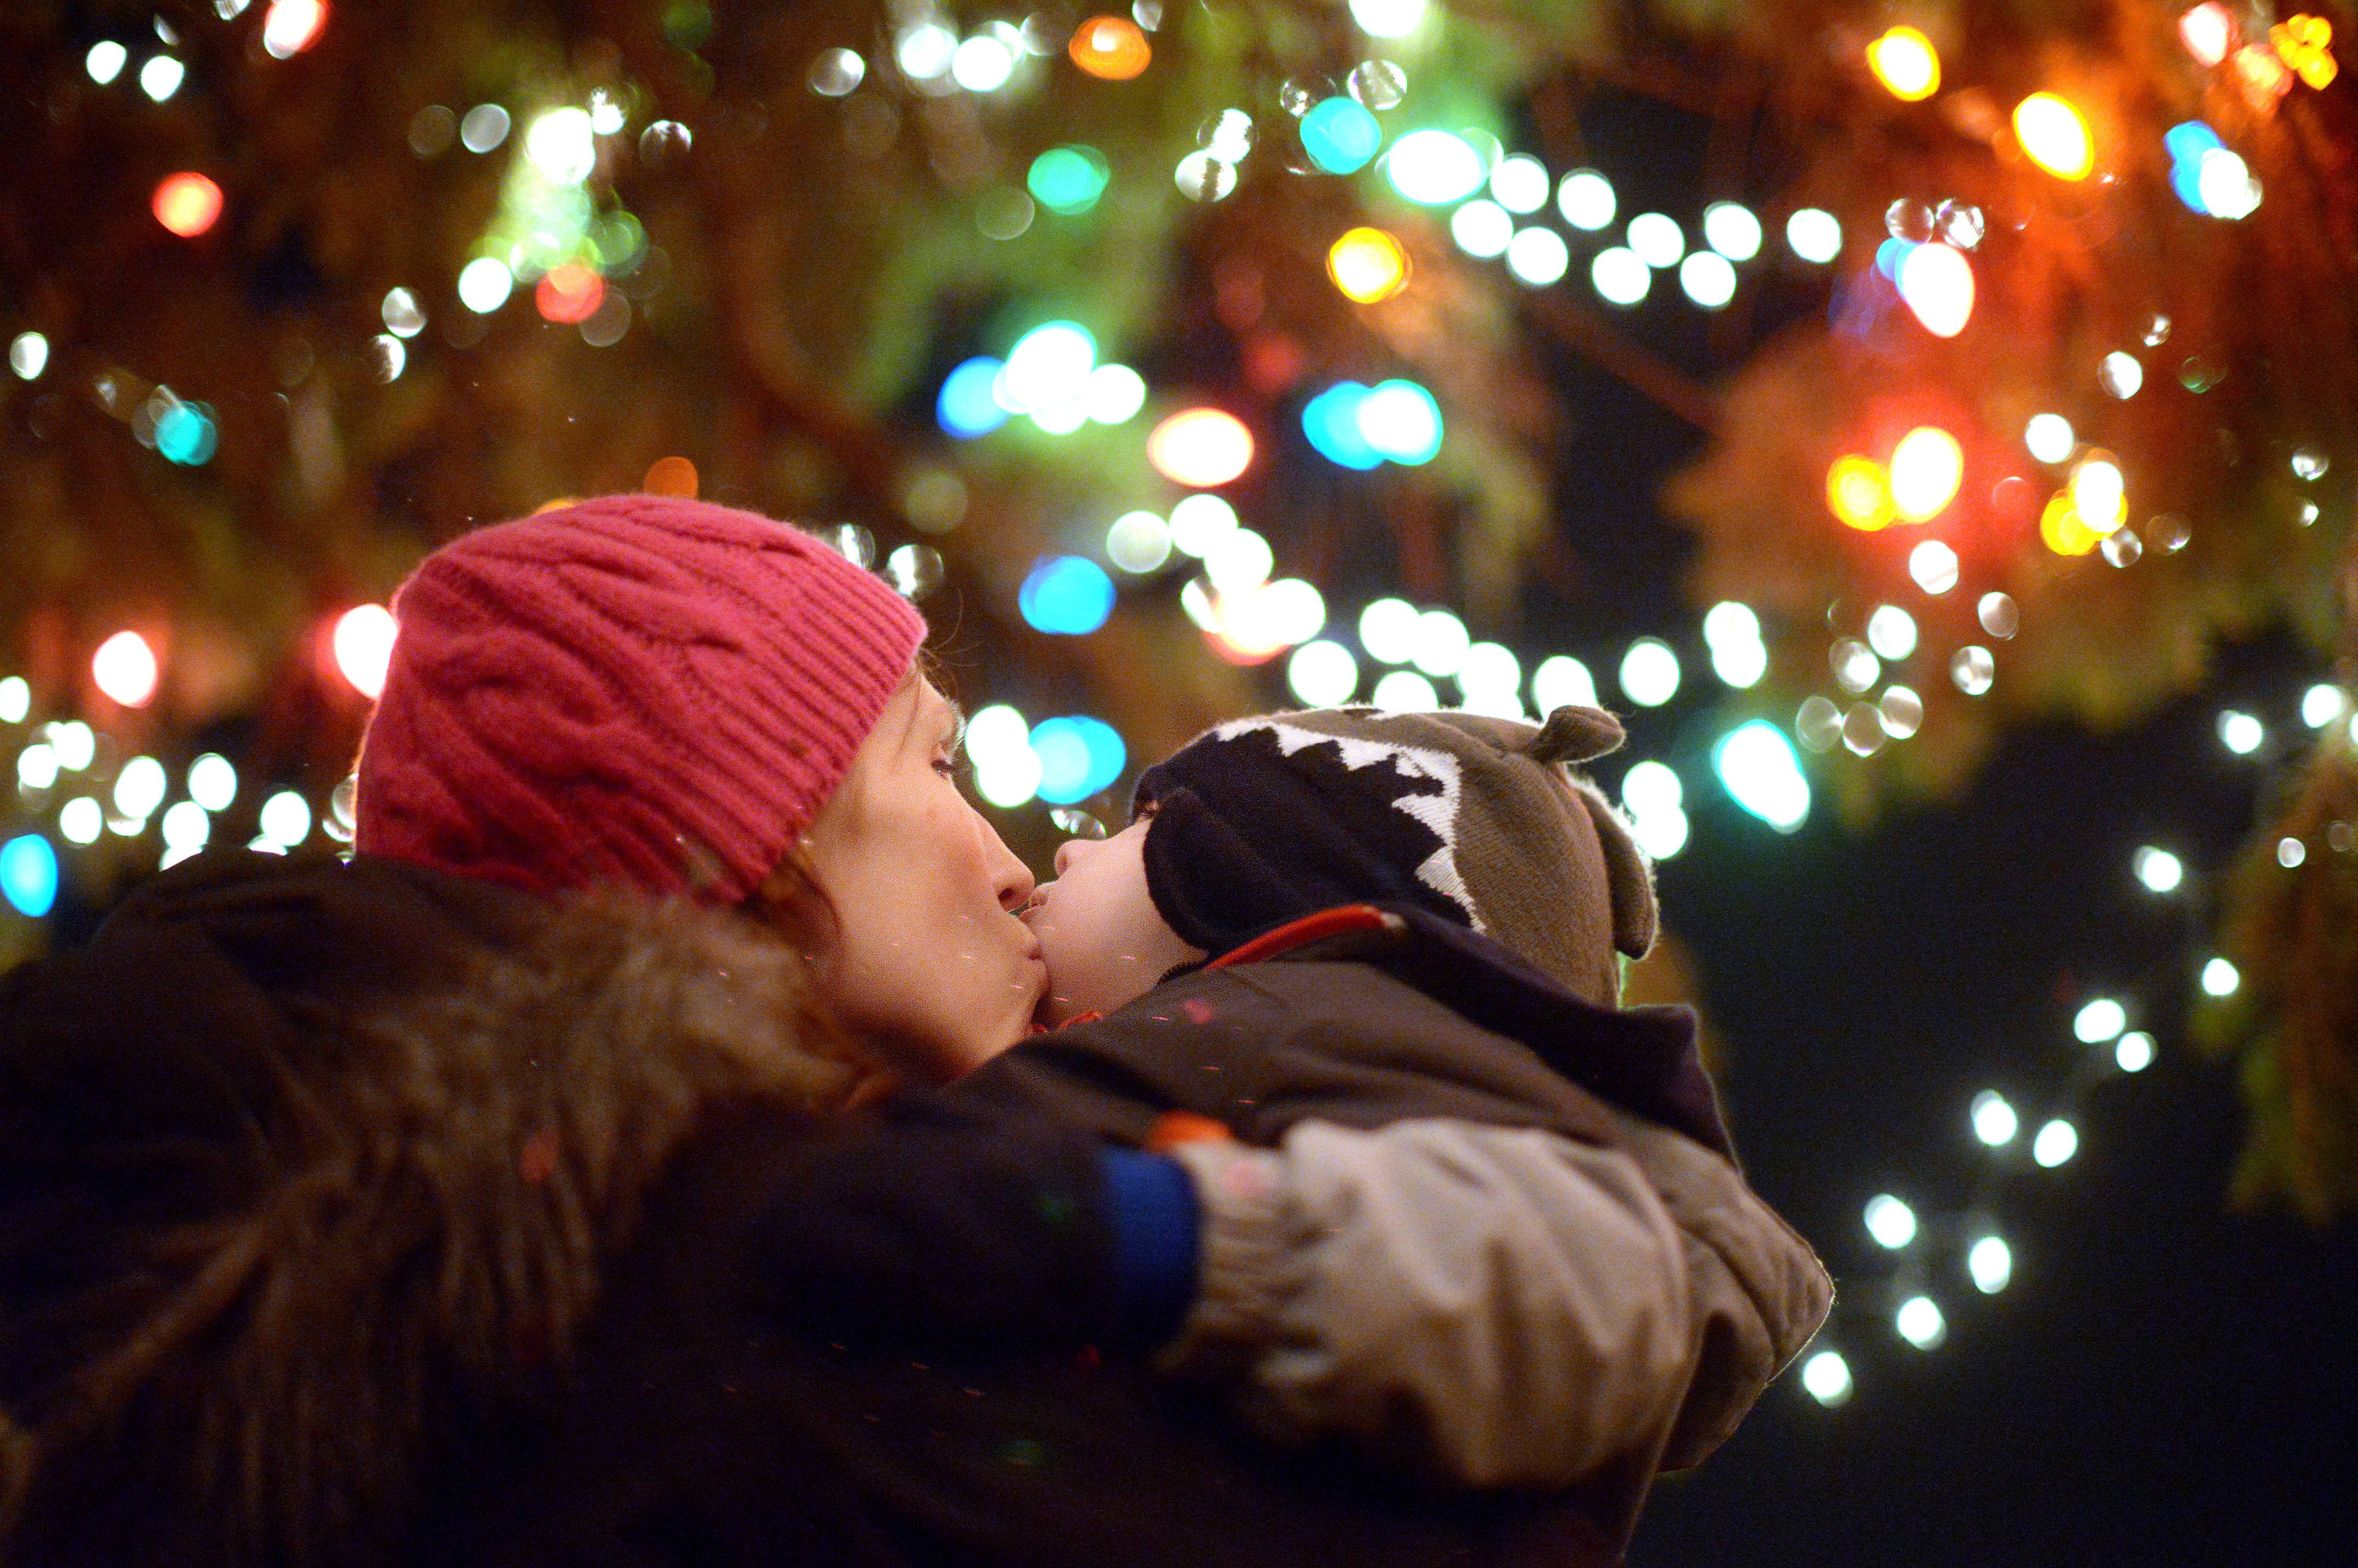 Matthew Koenig, 3, of St. Charles gets a peck on the cheek from his mother, Erin, underneath the Geneva Christmas tree on Third Stree in downtown Geneva Friday. This is the first time they've attended the annual event.